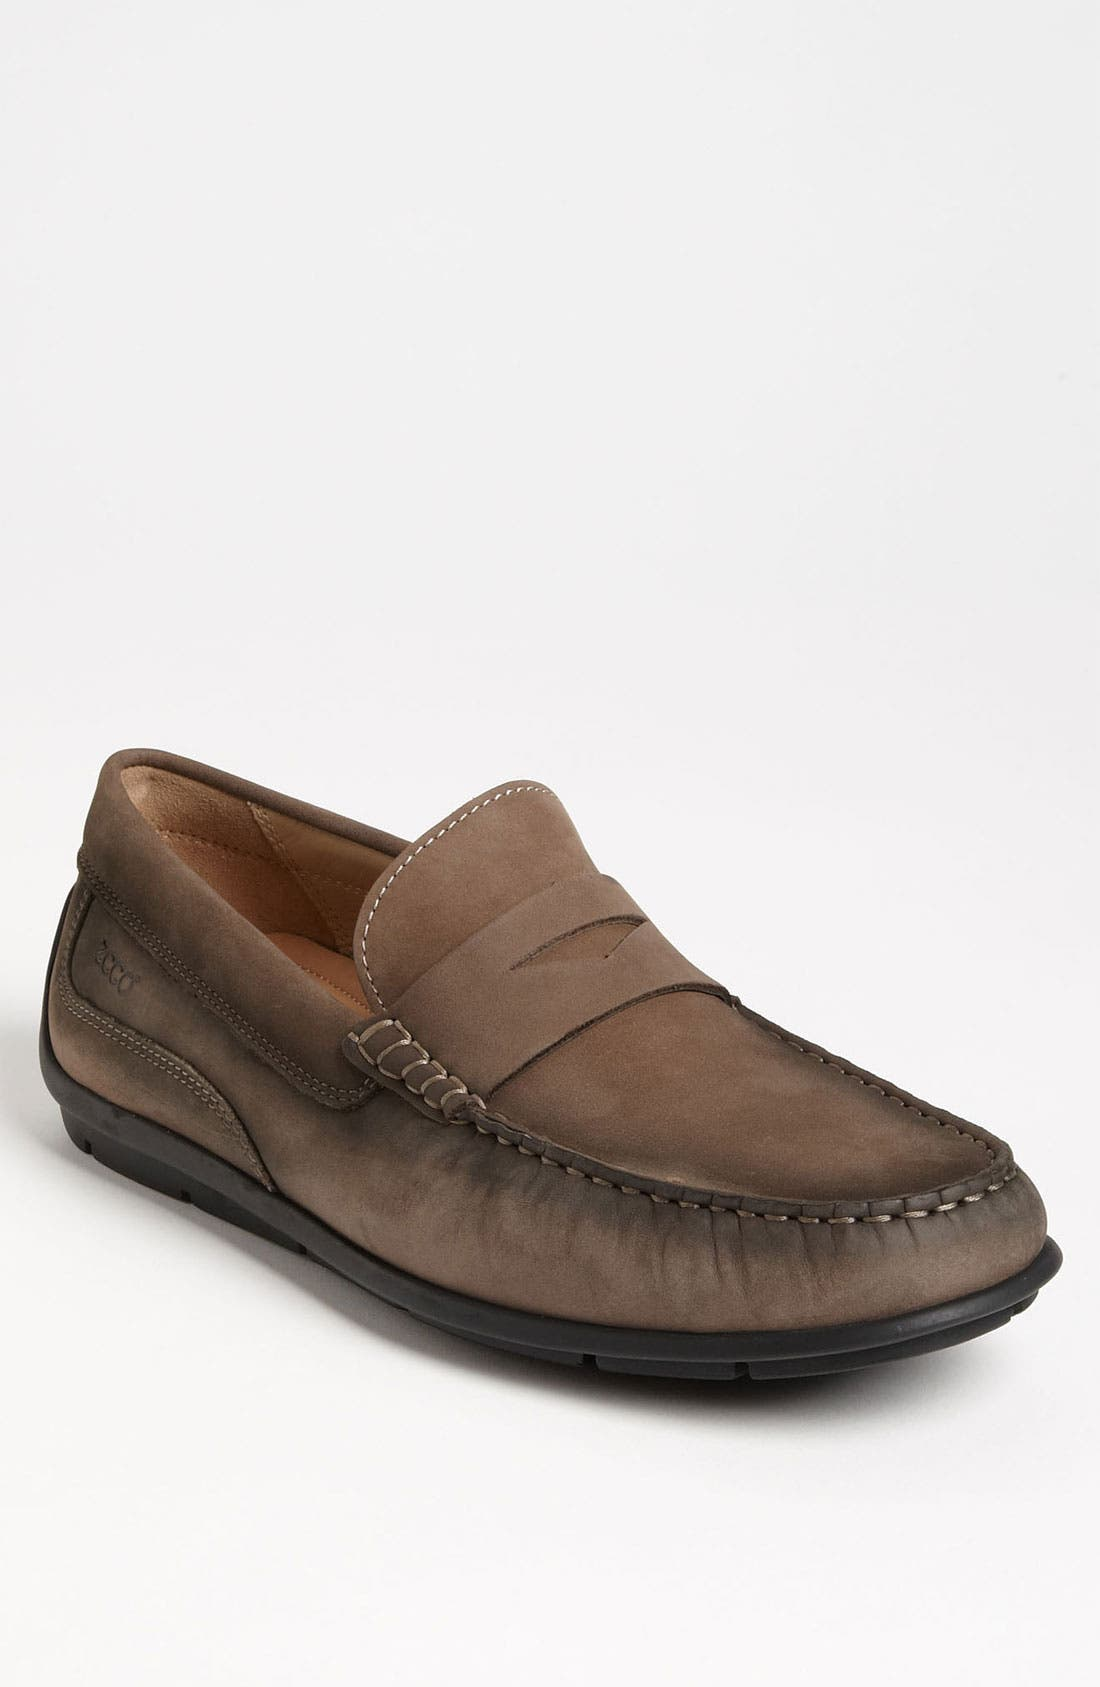 Alternate Image 1 Selected - ECCO 'Classic' Penny Loafer (Men)